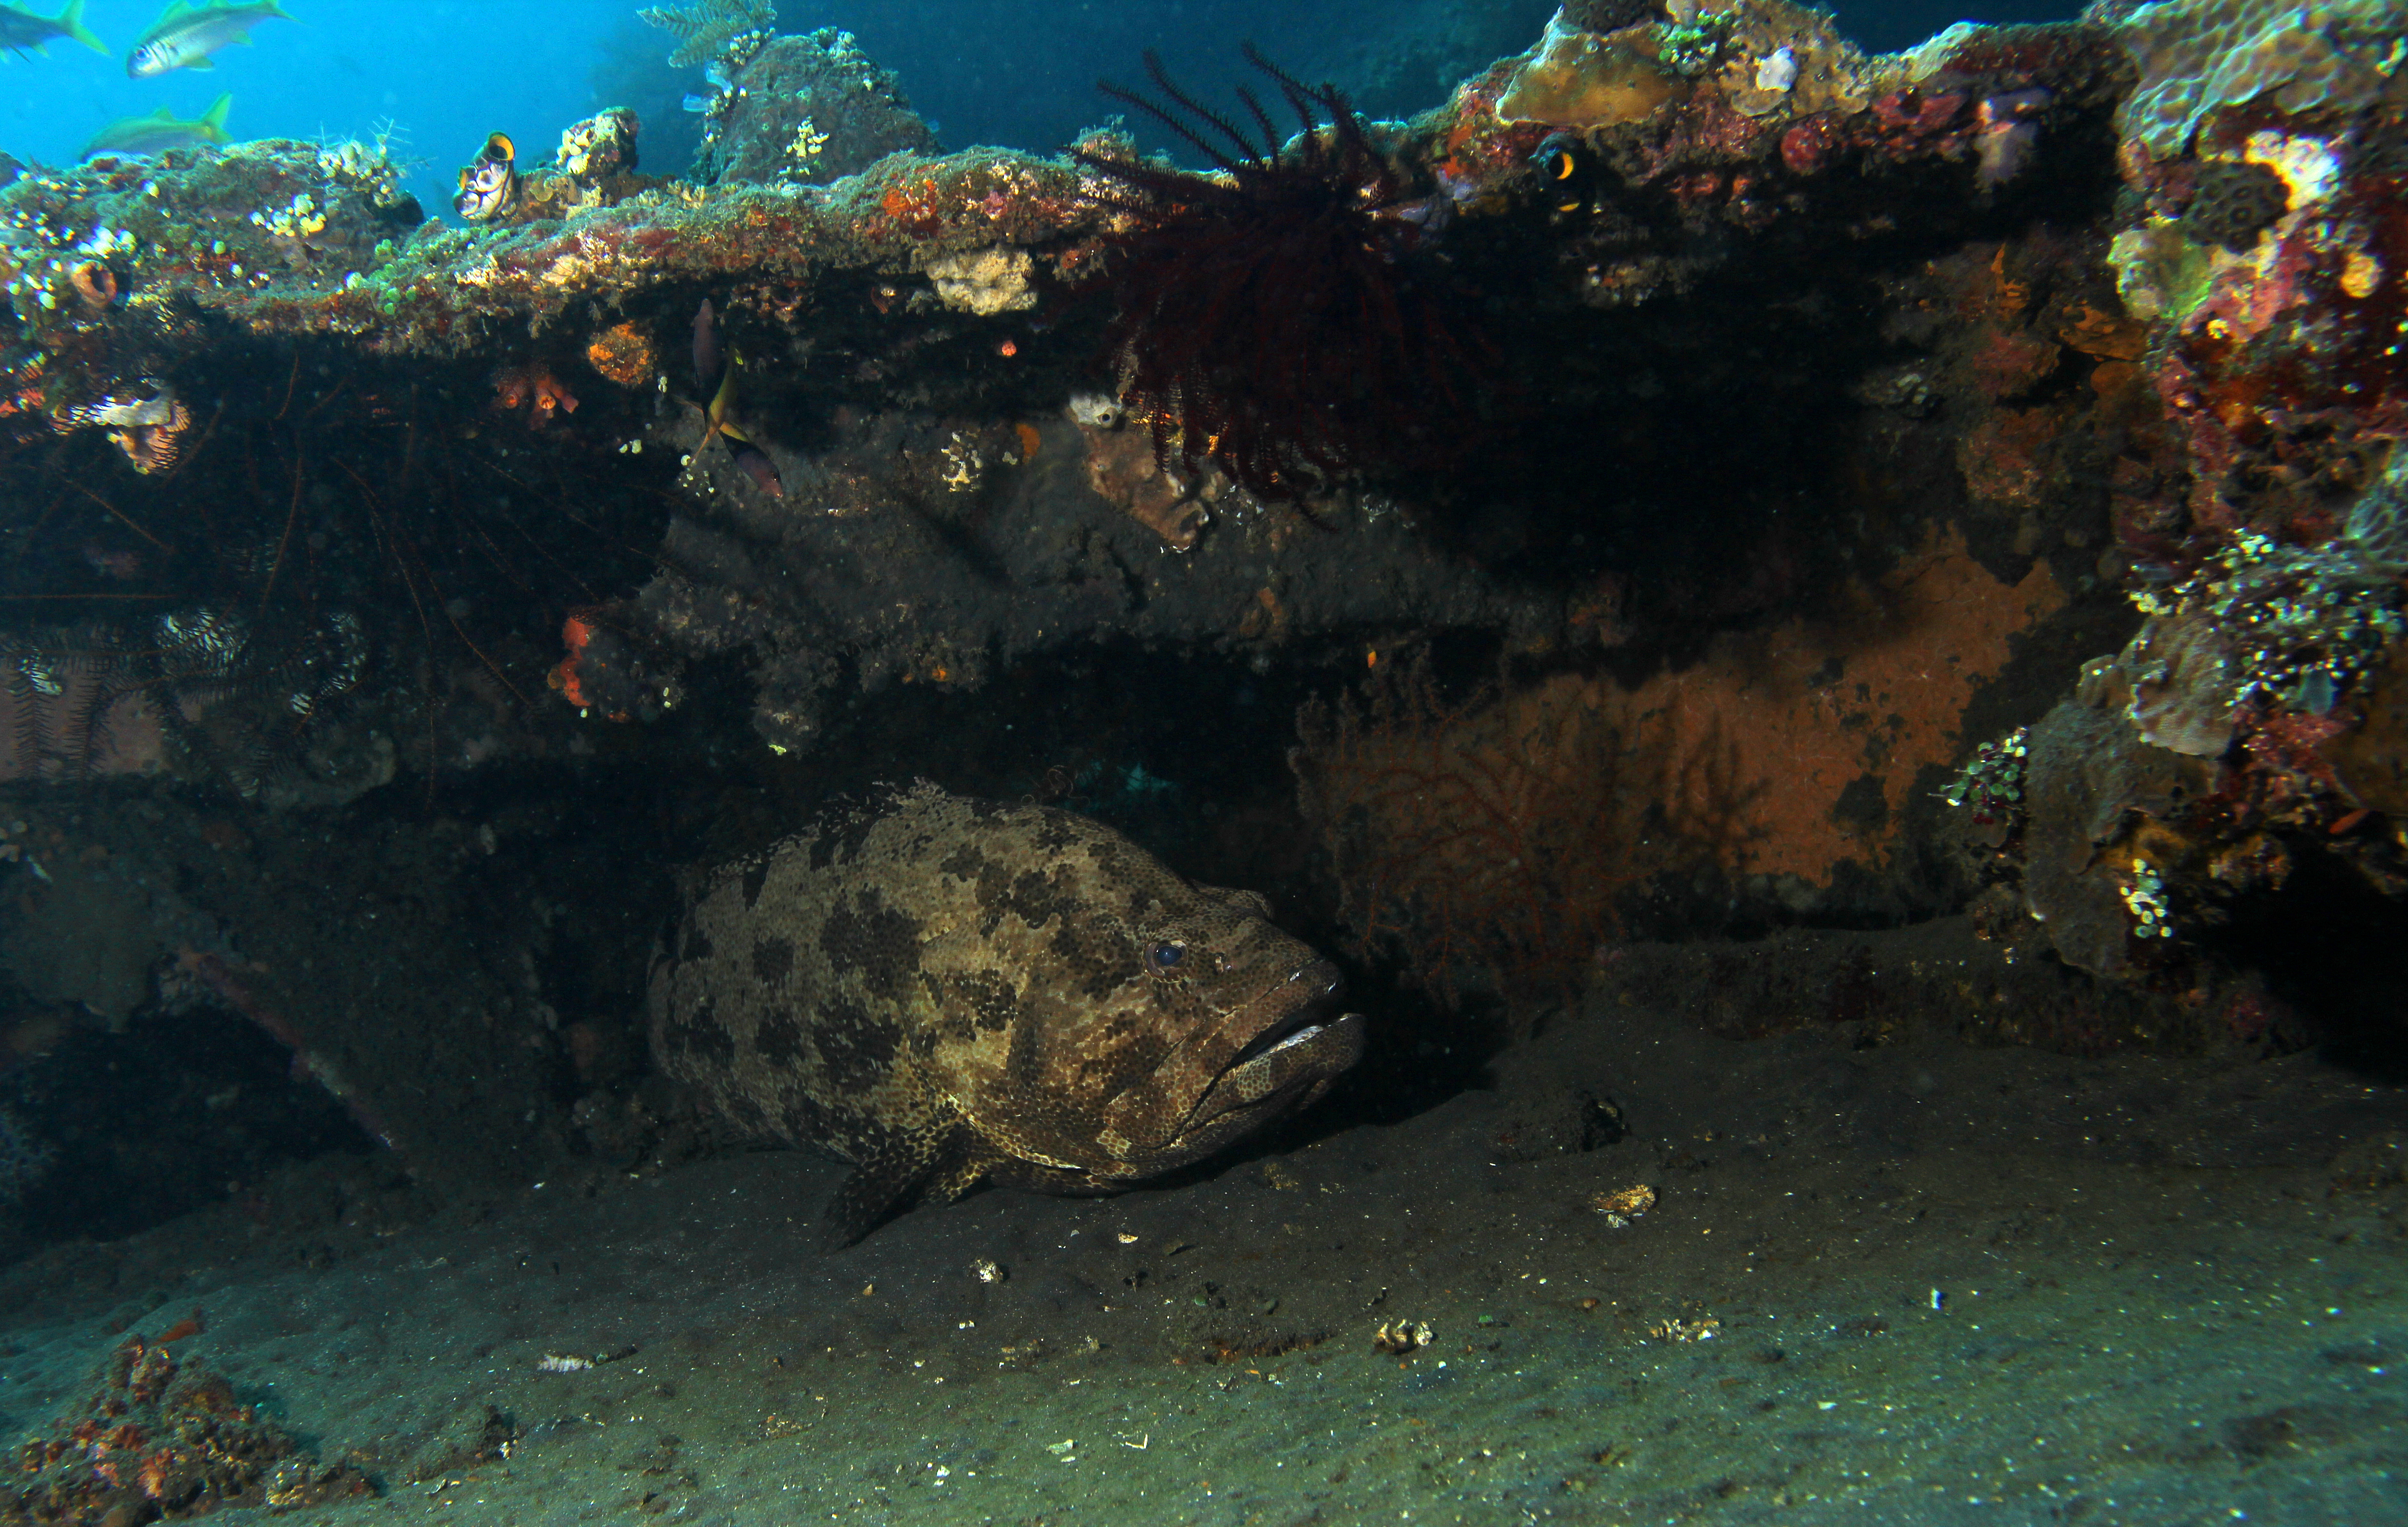 Brown Marbled Grouper